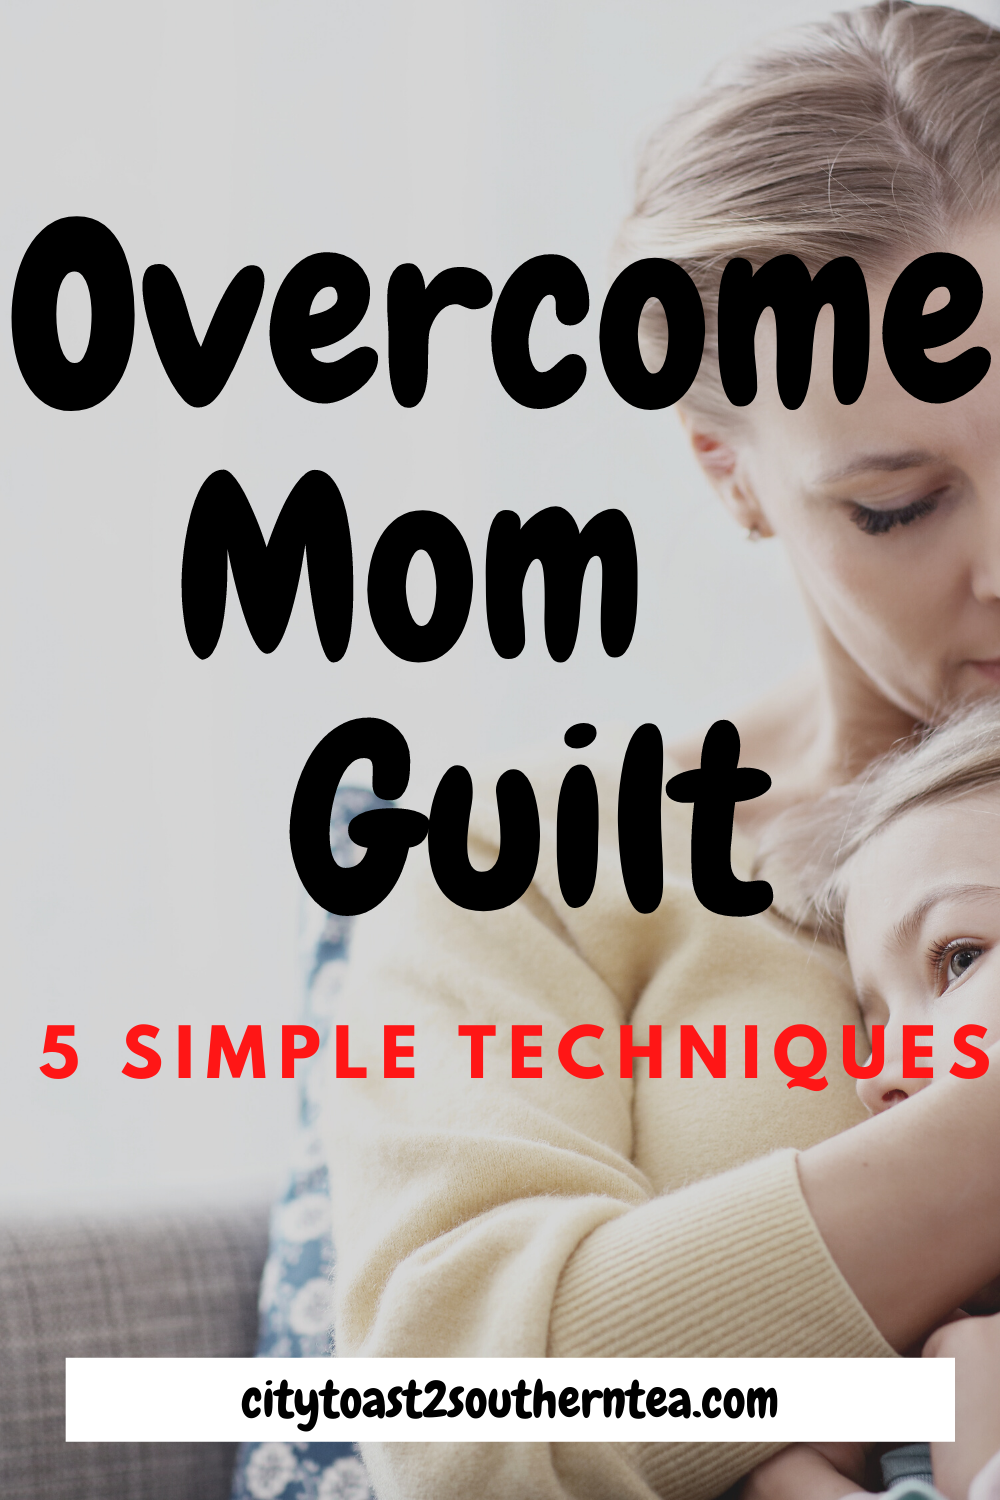 OVERCOME MOM GUILT TODAY